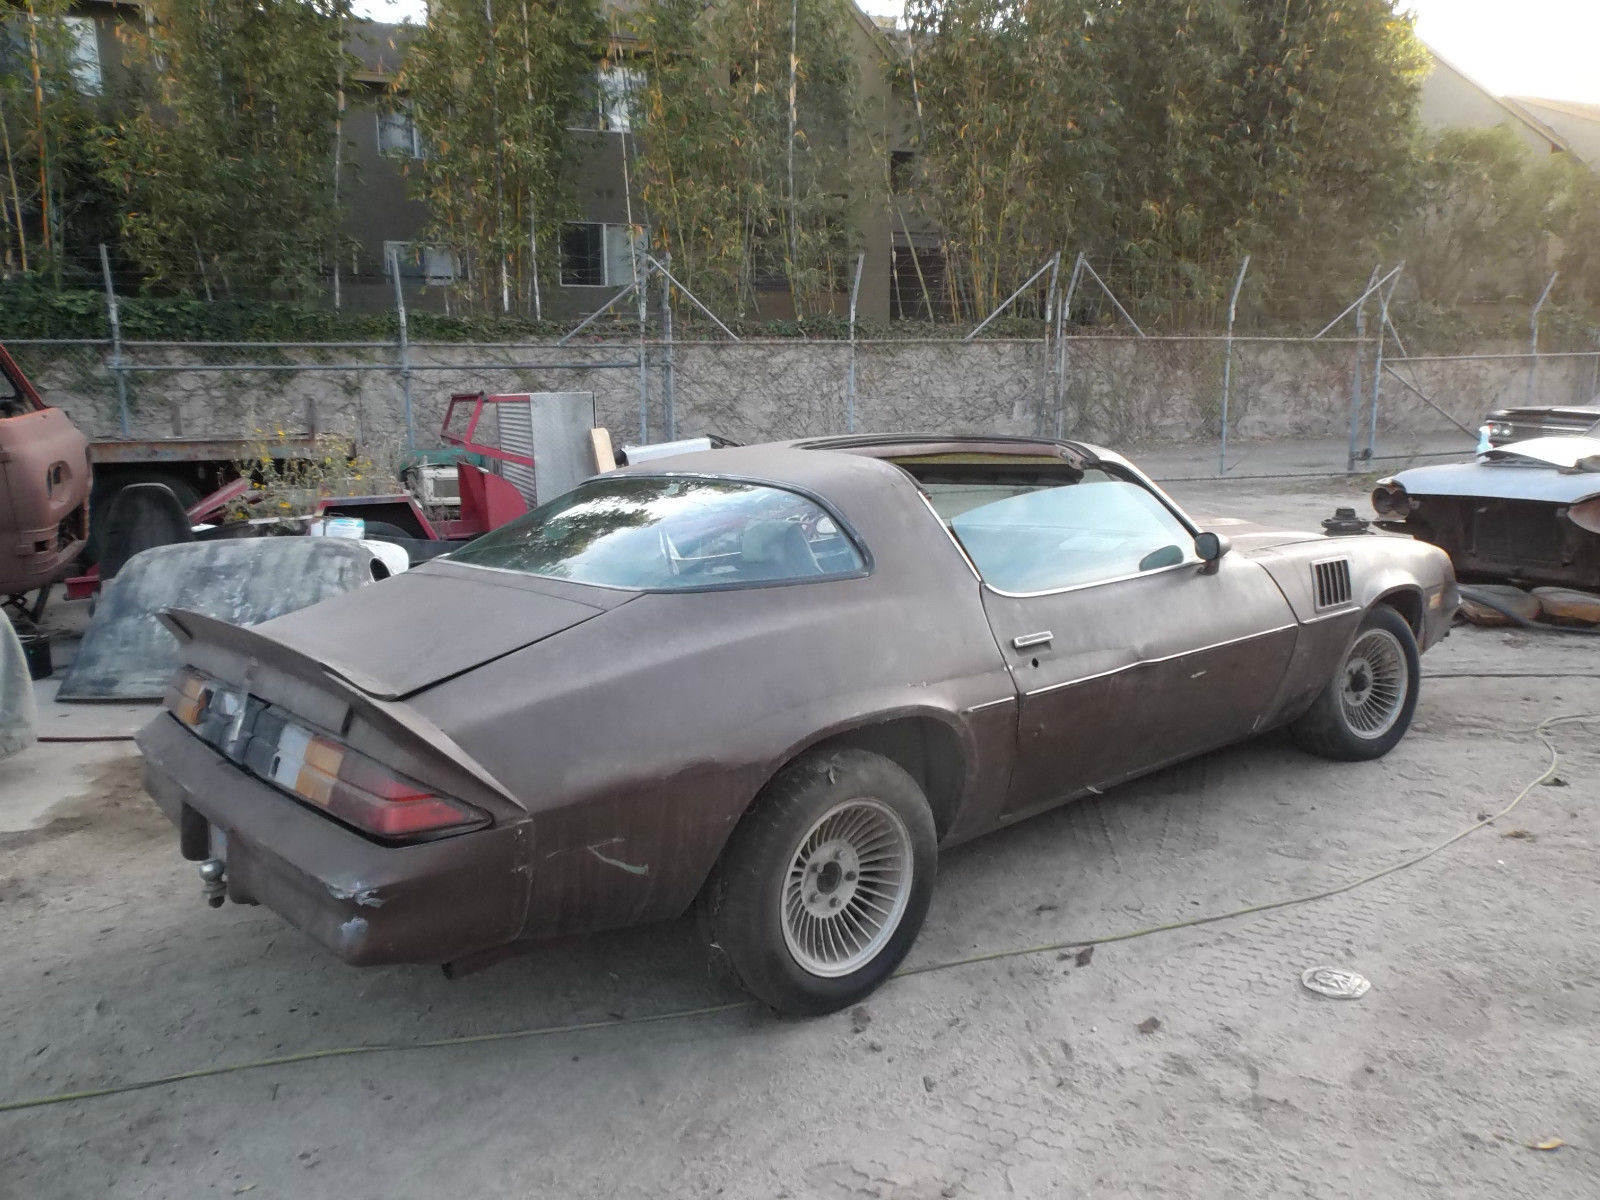 7522 1979 Camaro Z28 T Top 350 V 8 Automatic California Car Barn Find Project furthermore 7522 1979 Camaro Z28 T Top 350 V 8 Automatic California Car Barn Find Project further 7522 1979 Camaro Z28 T Top 350 V 8 Automatic California Car Barn Find Project together with  on vehicle door oing